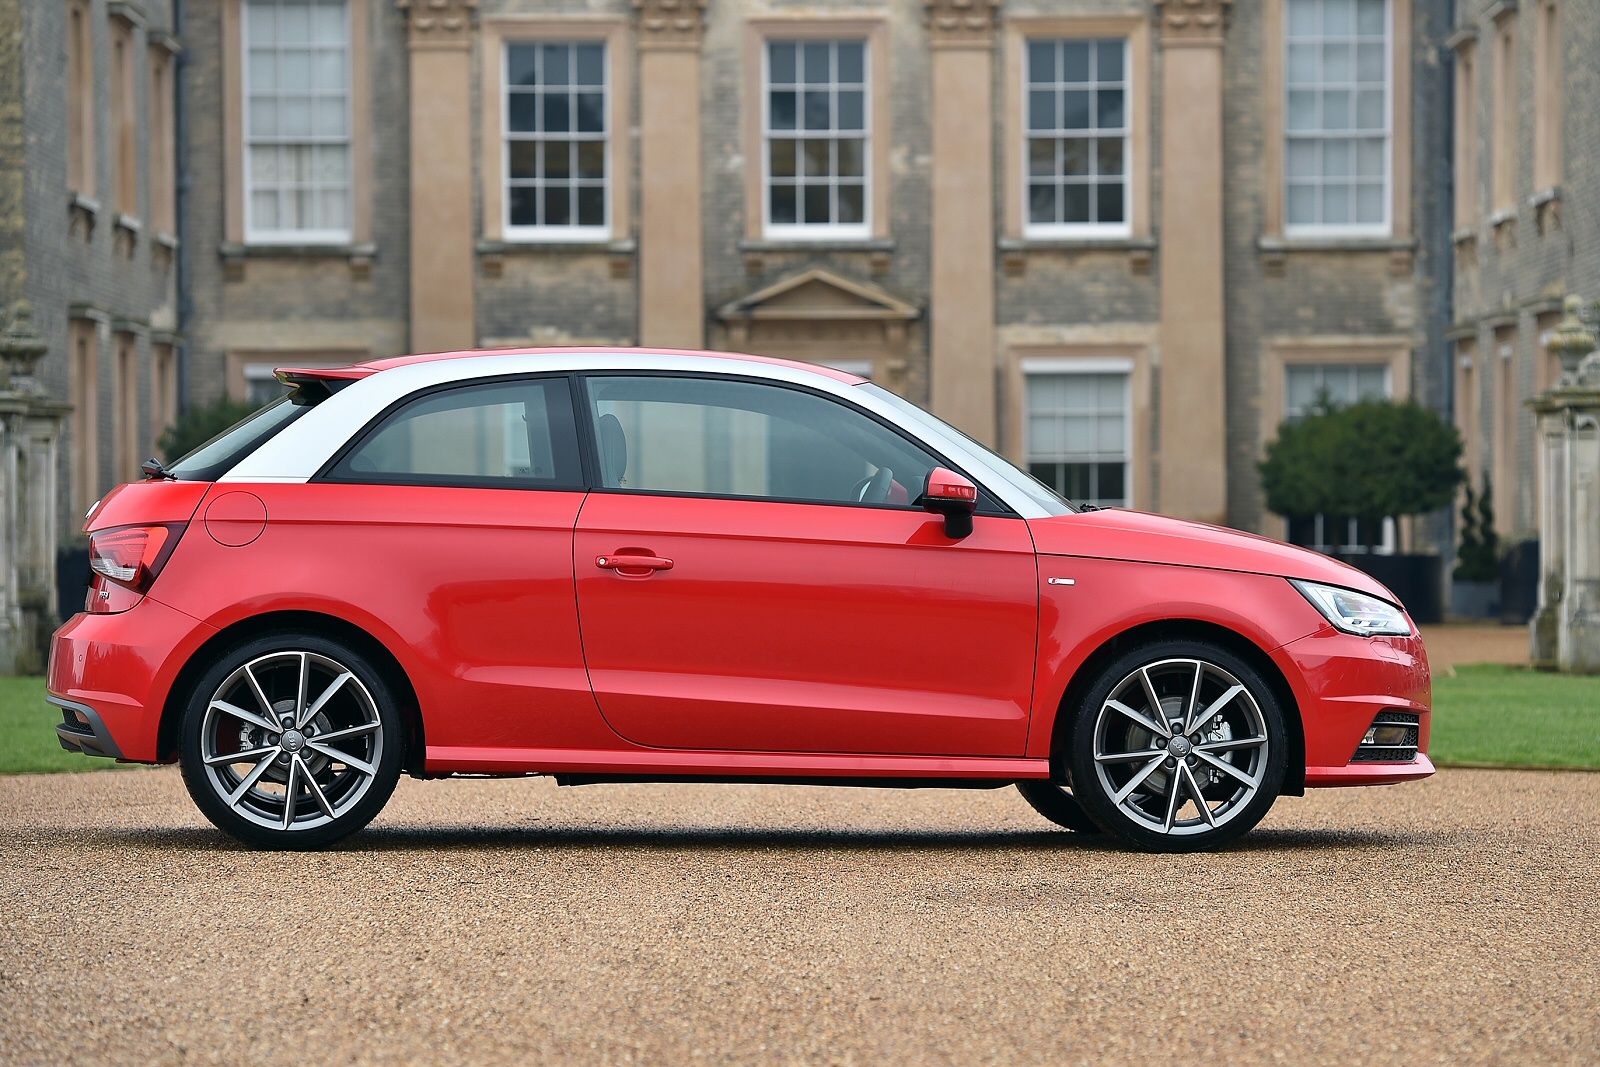 Audi A1 1.0 TFSI Independent New Review